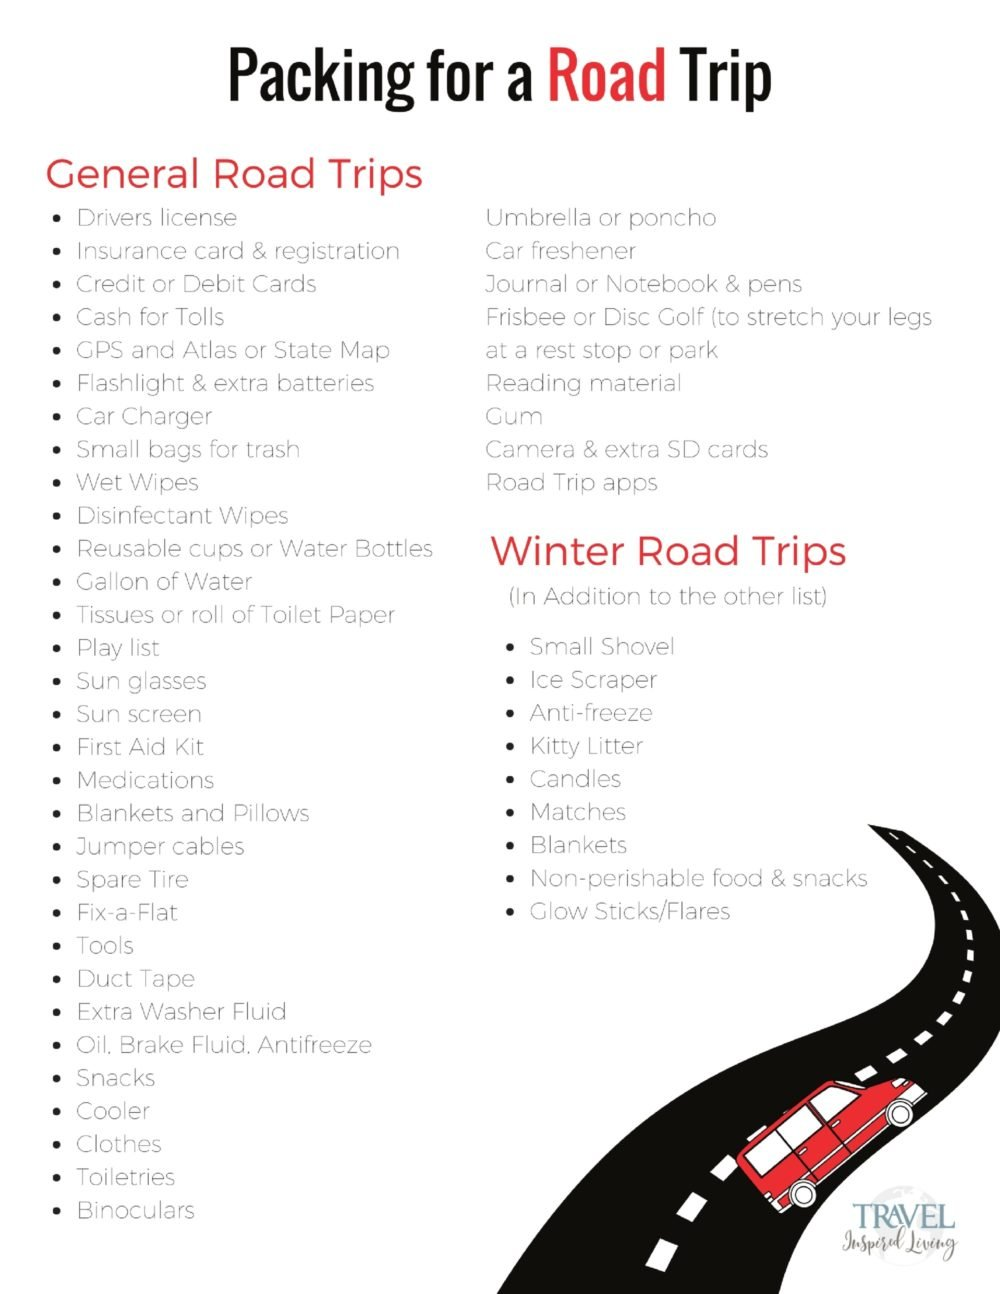 Packing for a Road Trip Printable